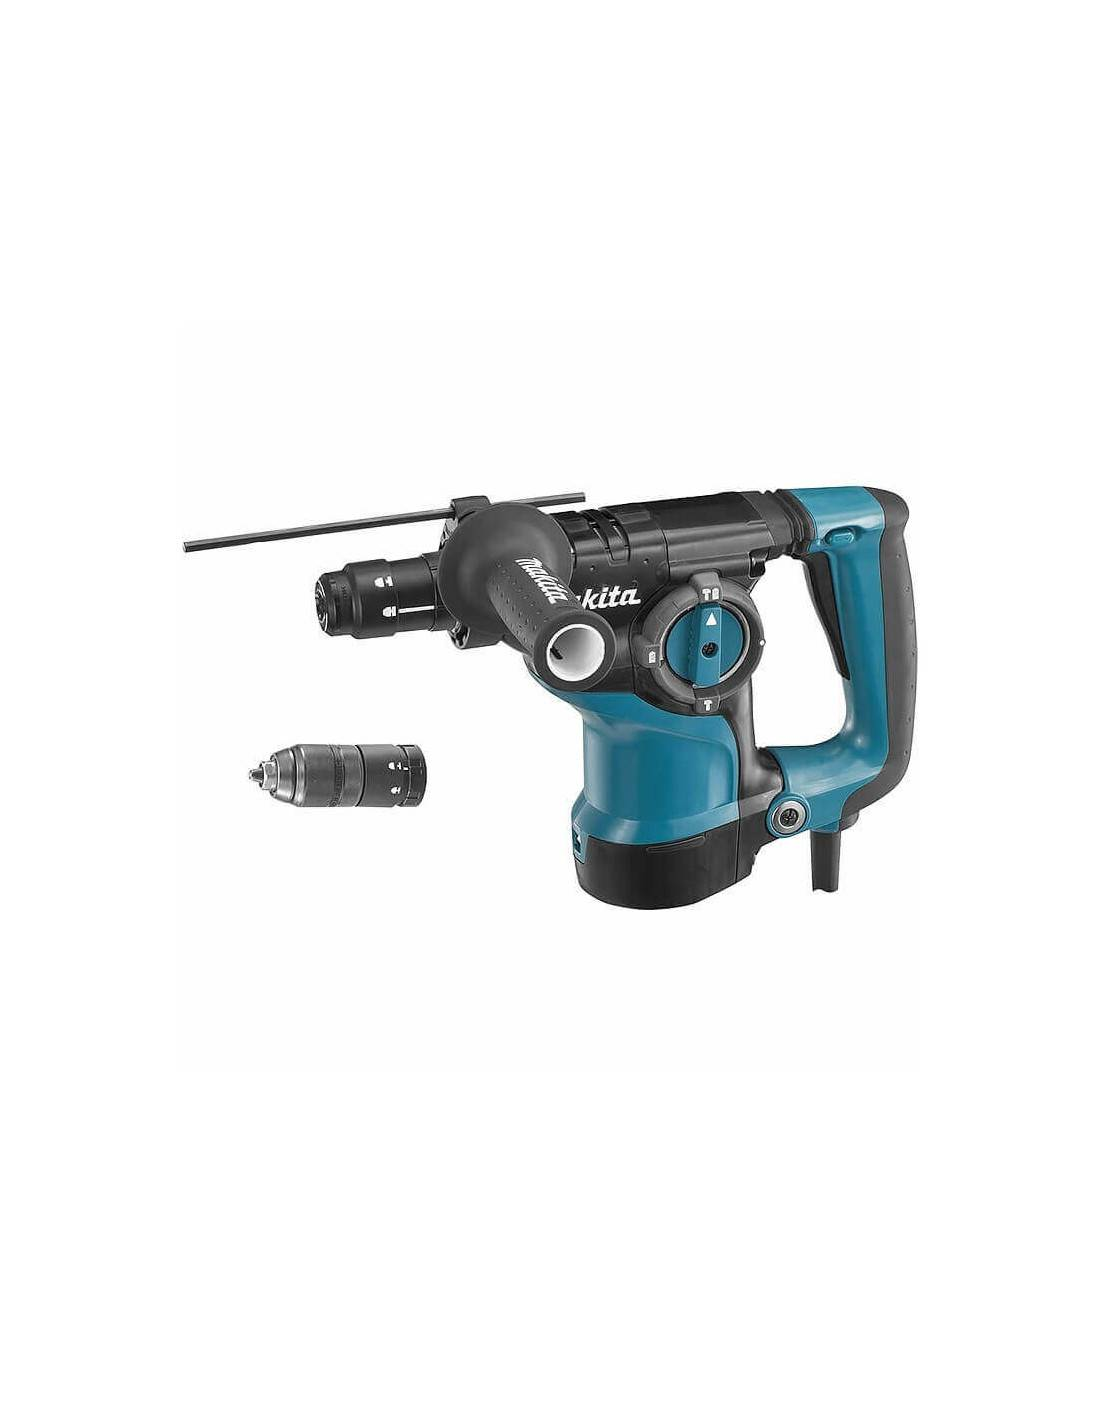 MAKITA - Perfo-burineur SDS+ 800W en coffret standard - HR2811FT